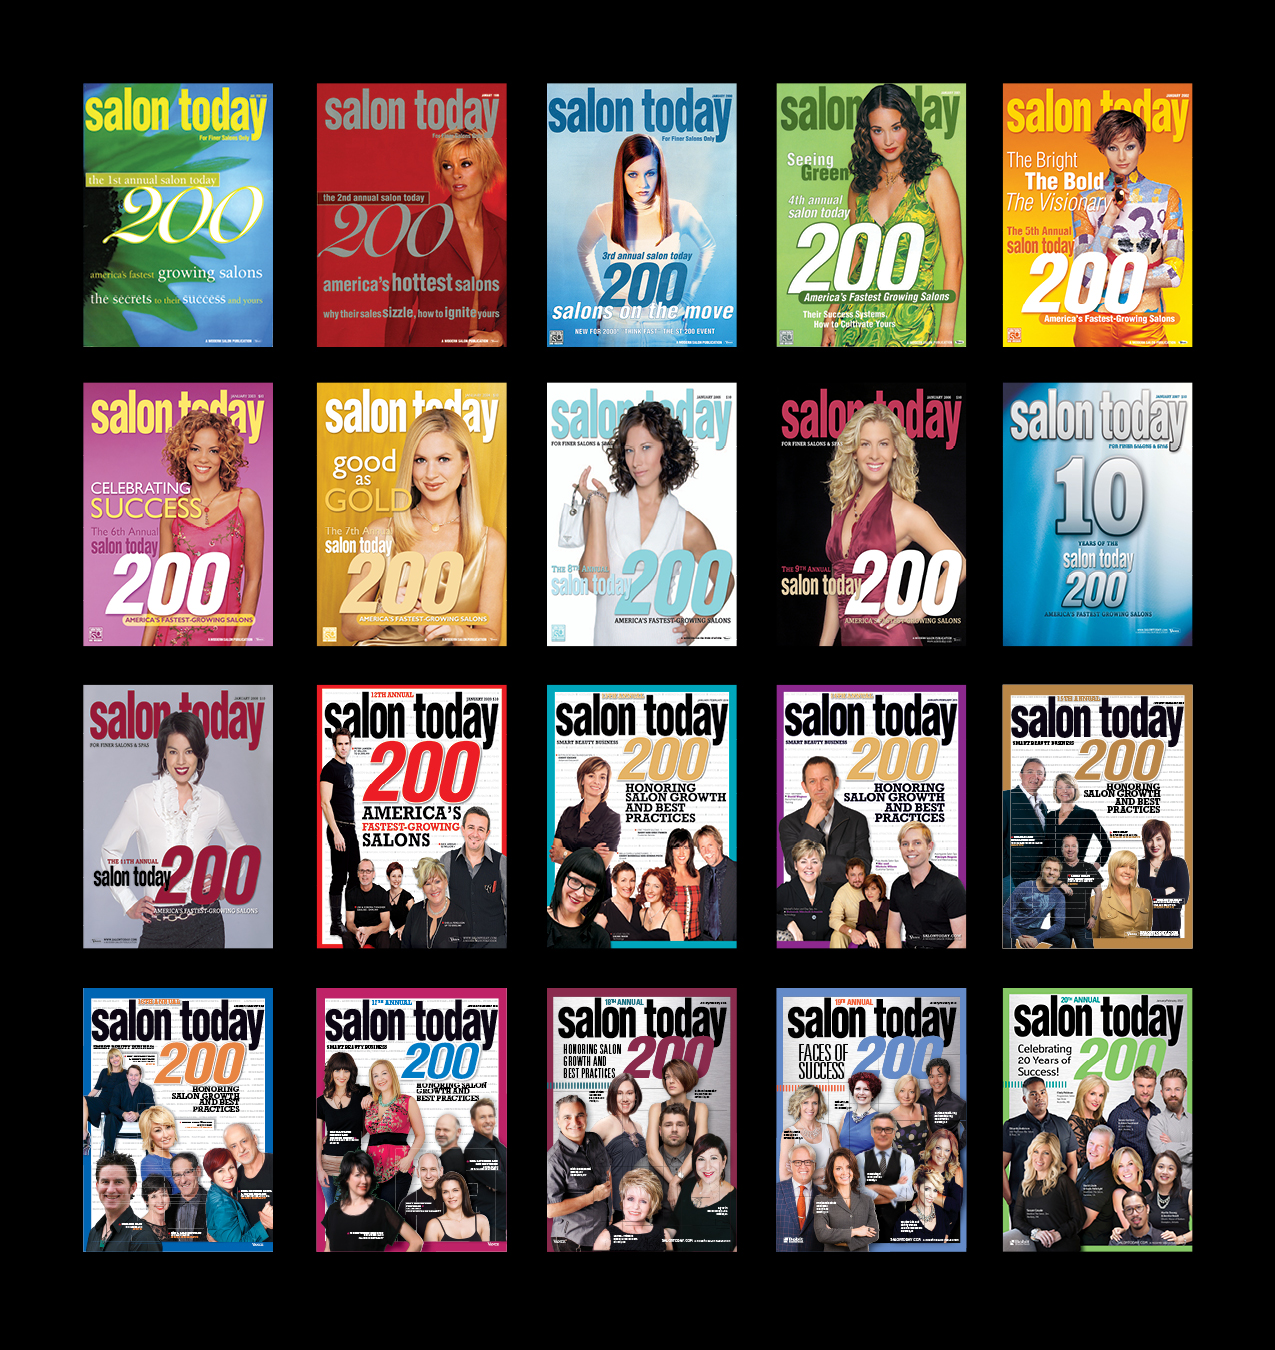 20 years of Salon Today 200 covers.